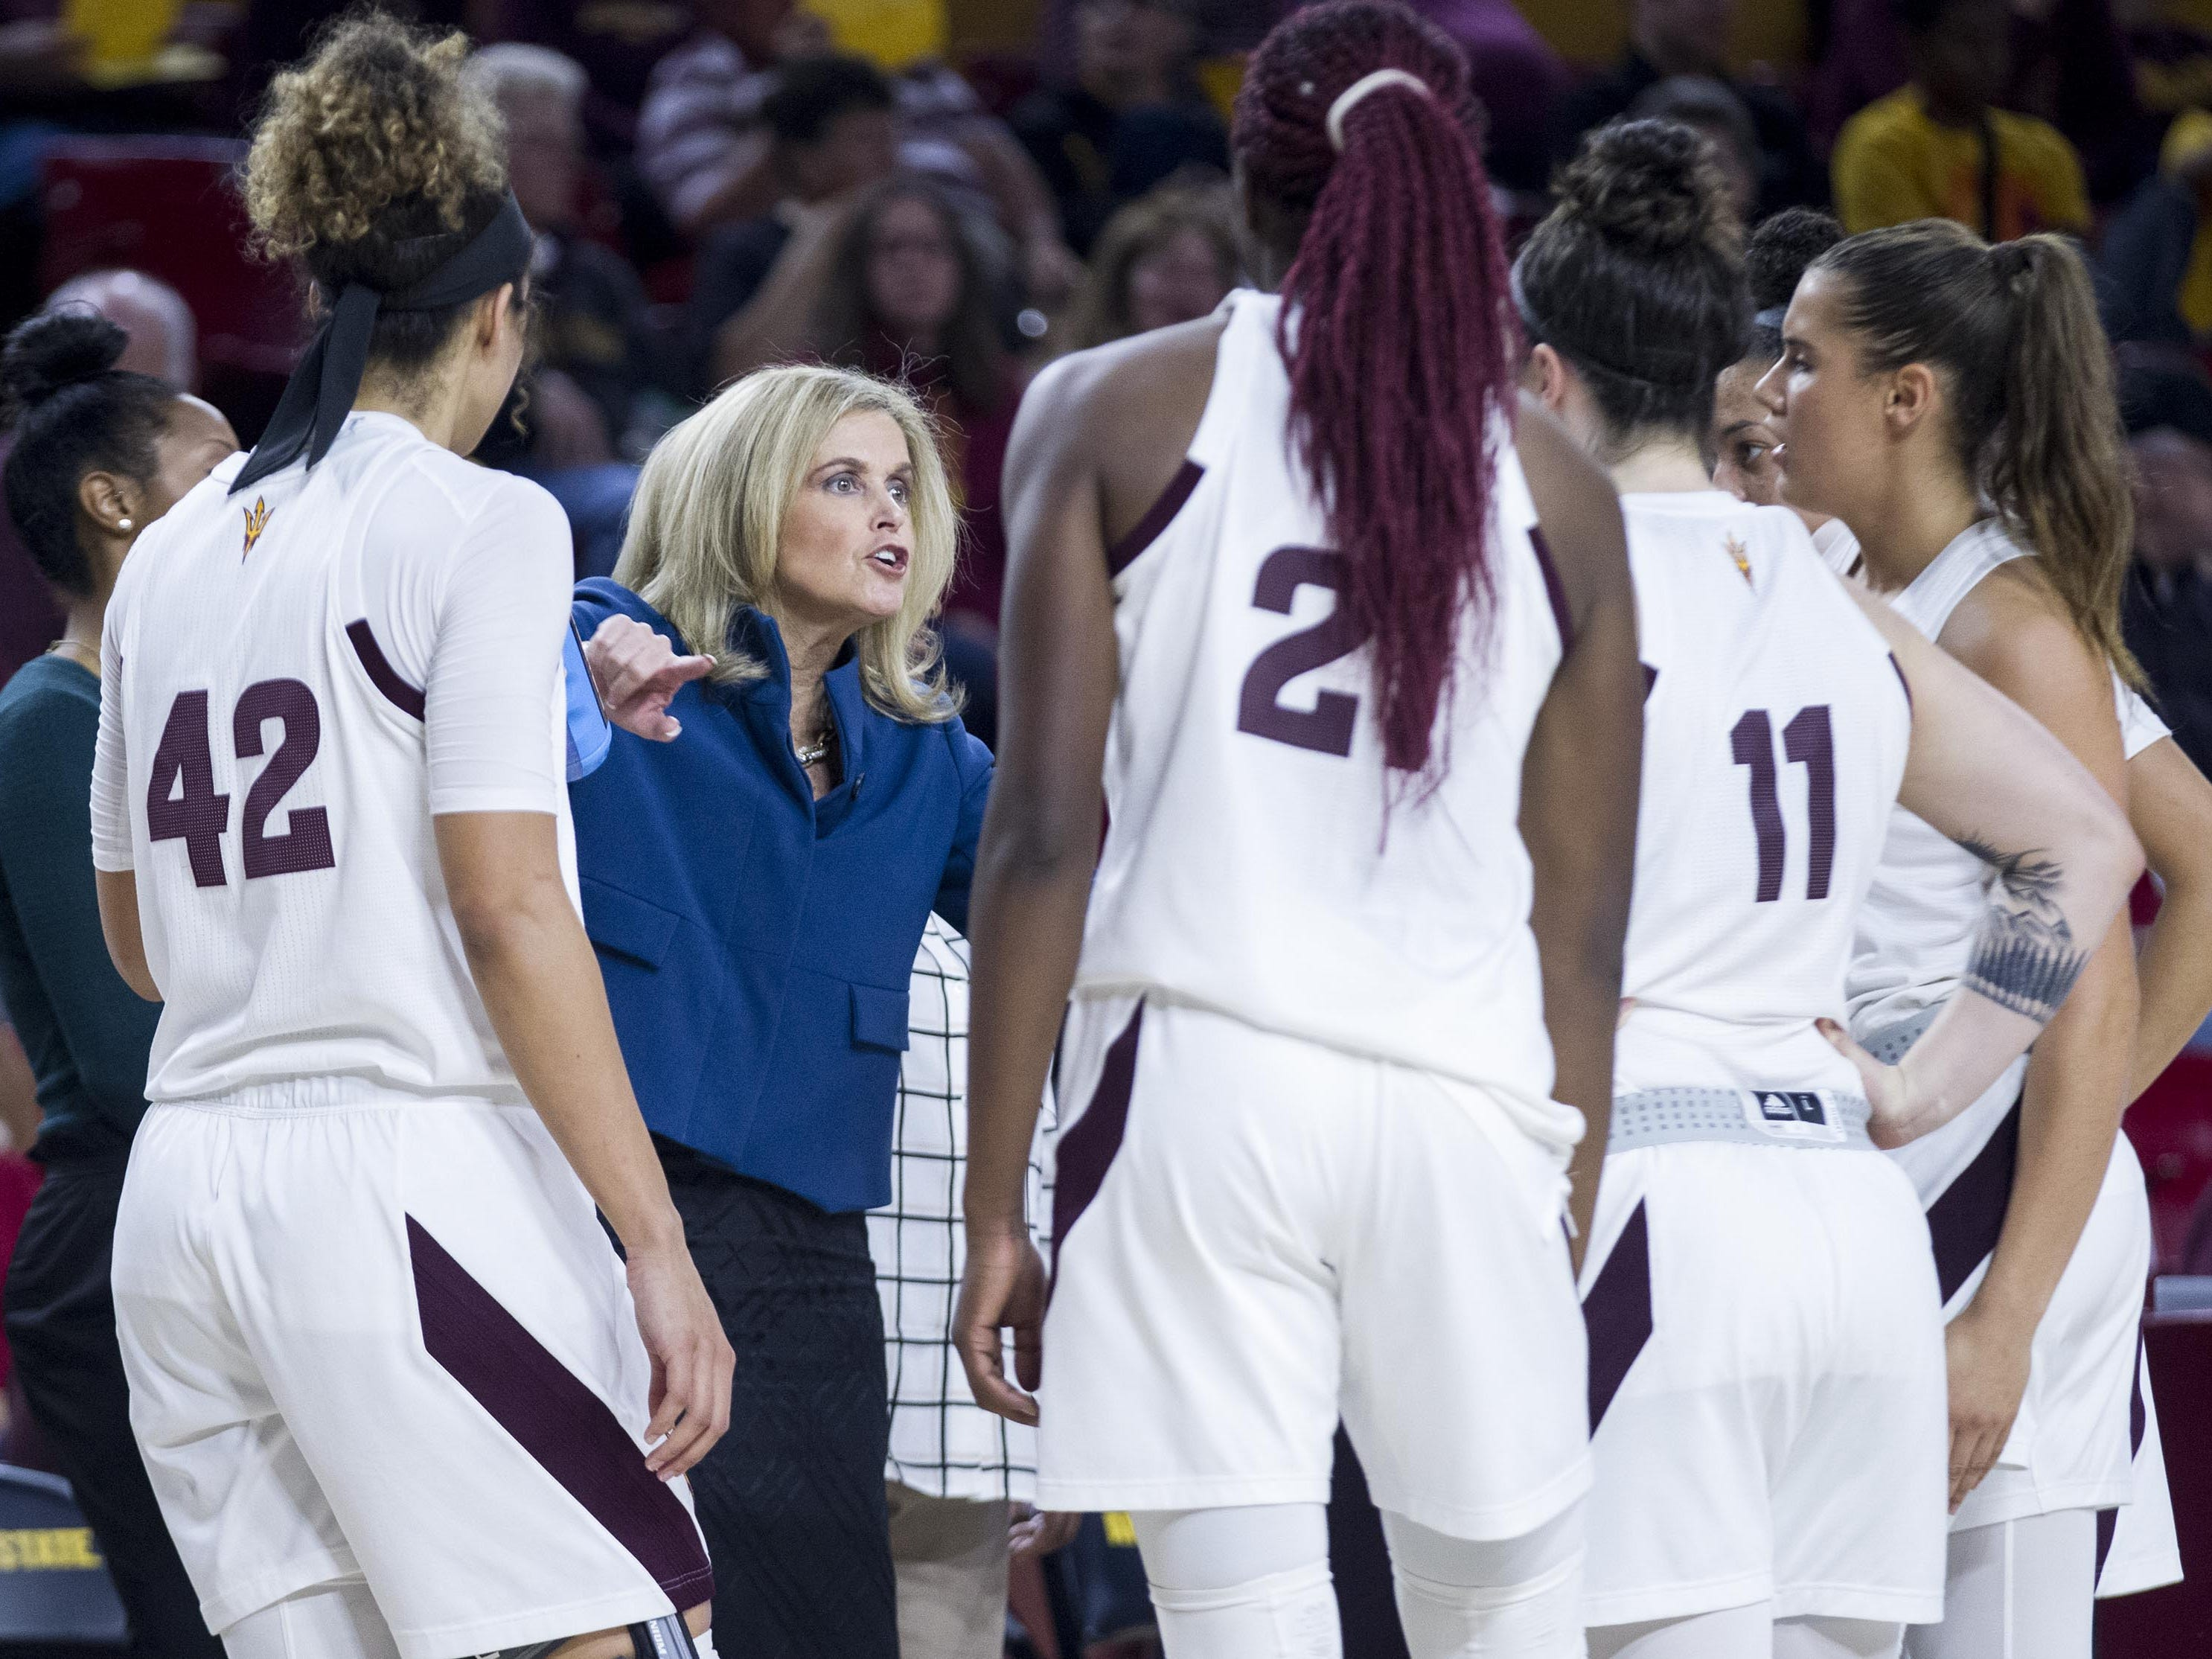 Arizona State head coach Charli Turner Thorne instructs her team against Fresno State's in the second half of their game in Tempe, Thursday, Dec. 20, 2018.